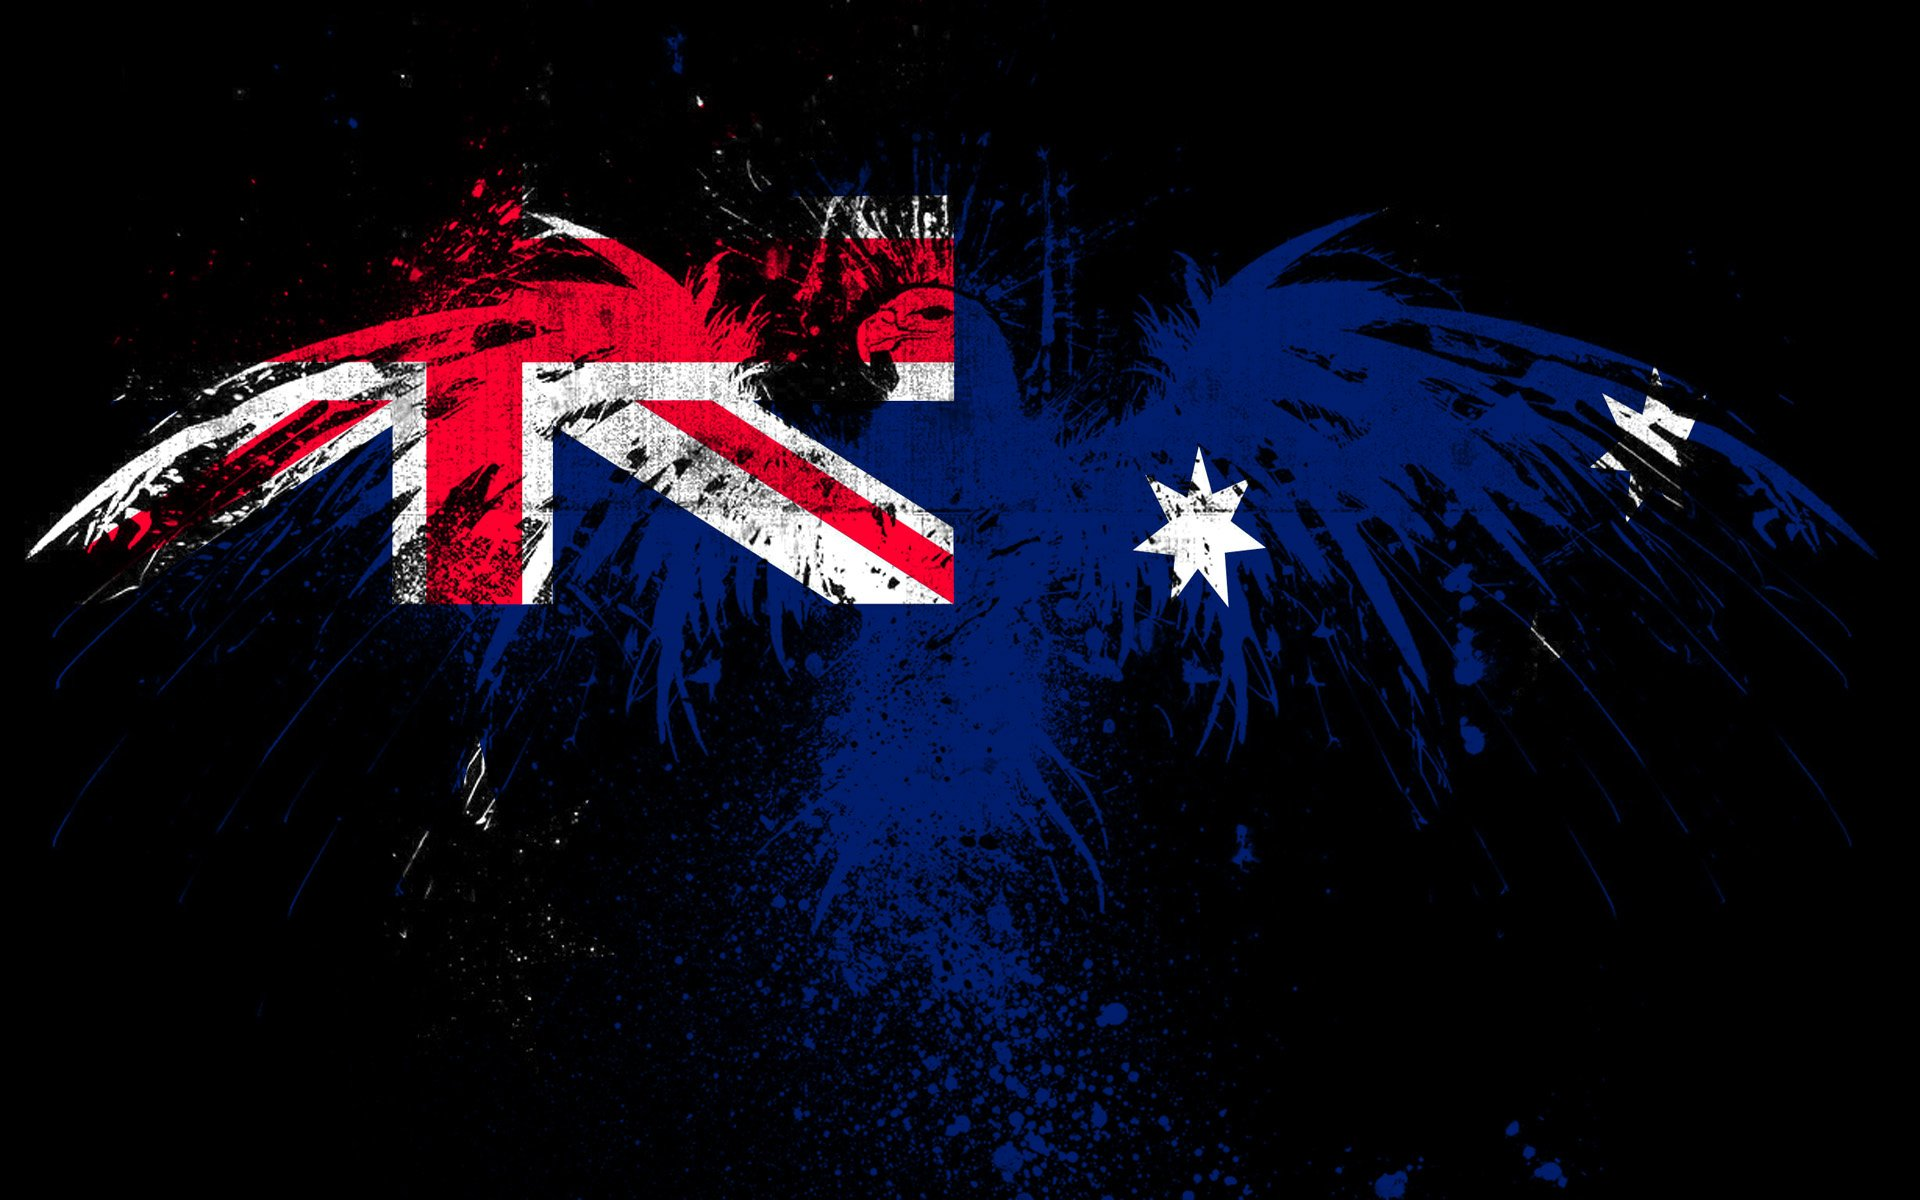 Flag Of Australia HD Wallpaper Background Image 1920x1200 ID 1920x1200